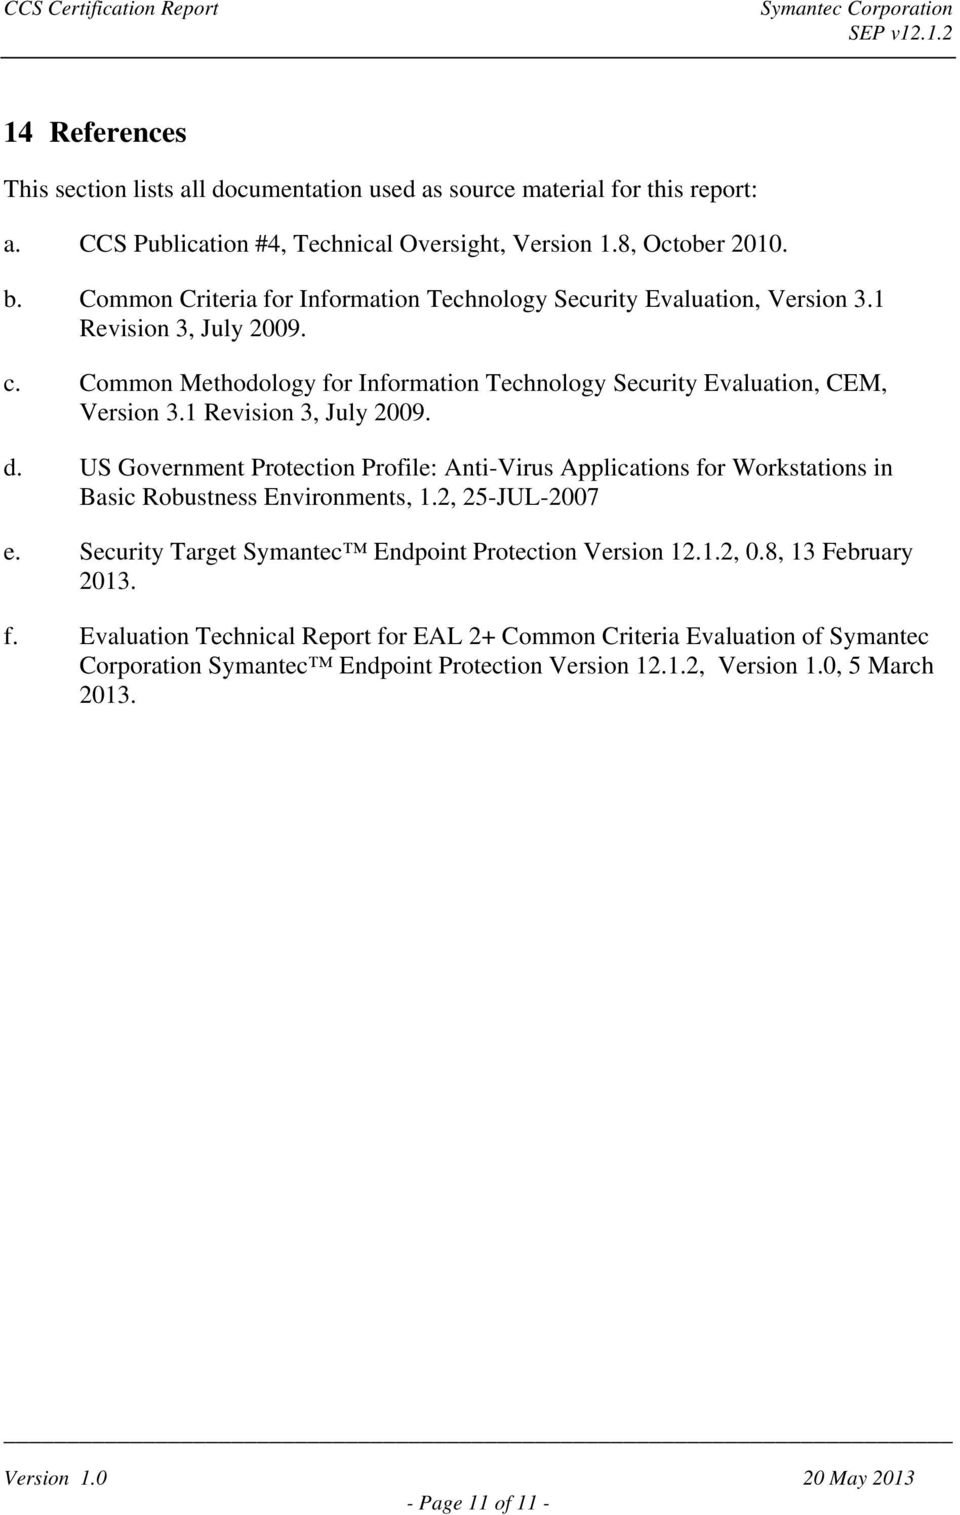 1 Revision 3, July 2009. d. US Government Protection Profile: Anti-Virus Applications for Workstations in Basic Robustness Environments, 1.2, 25-JUL-2007 e.